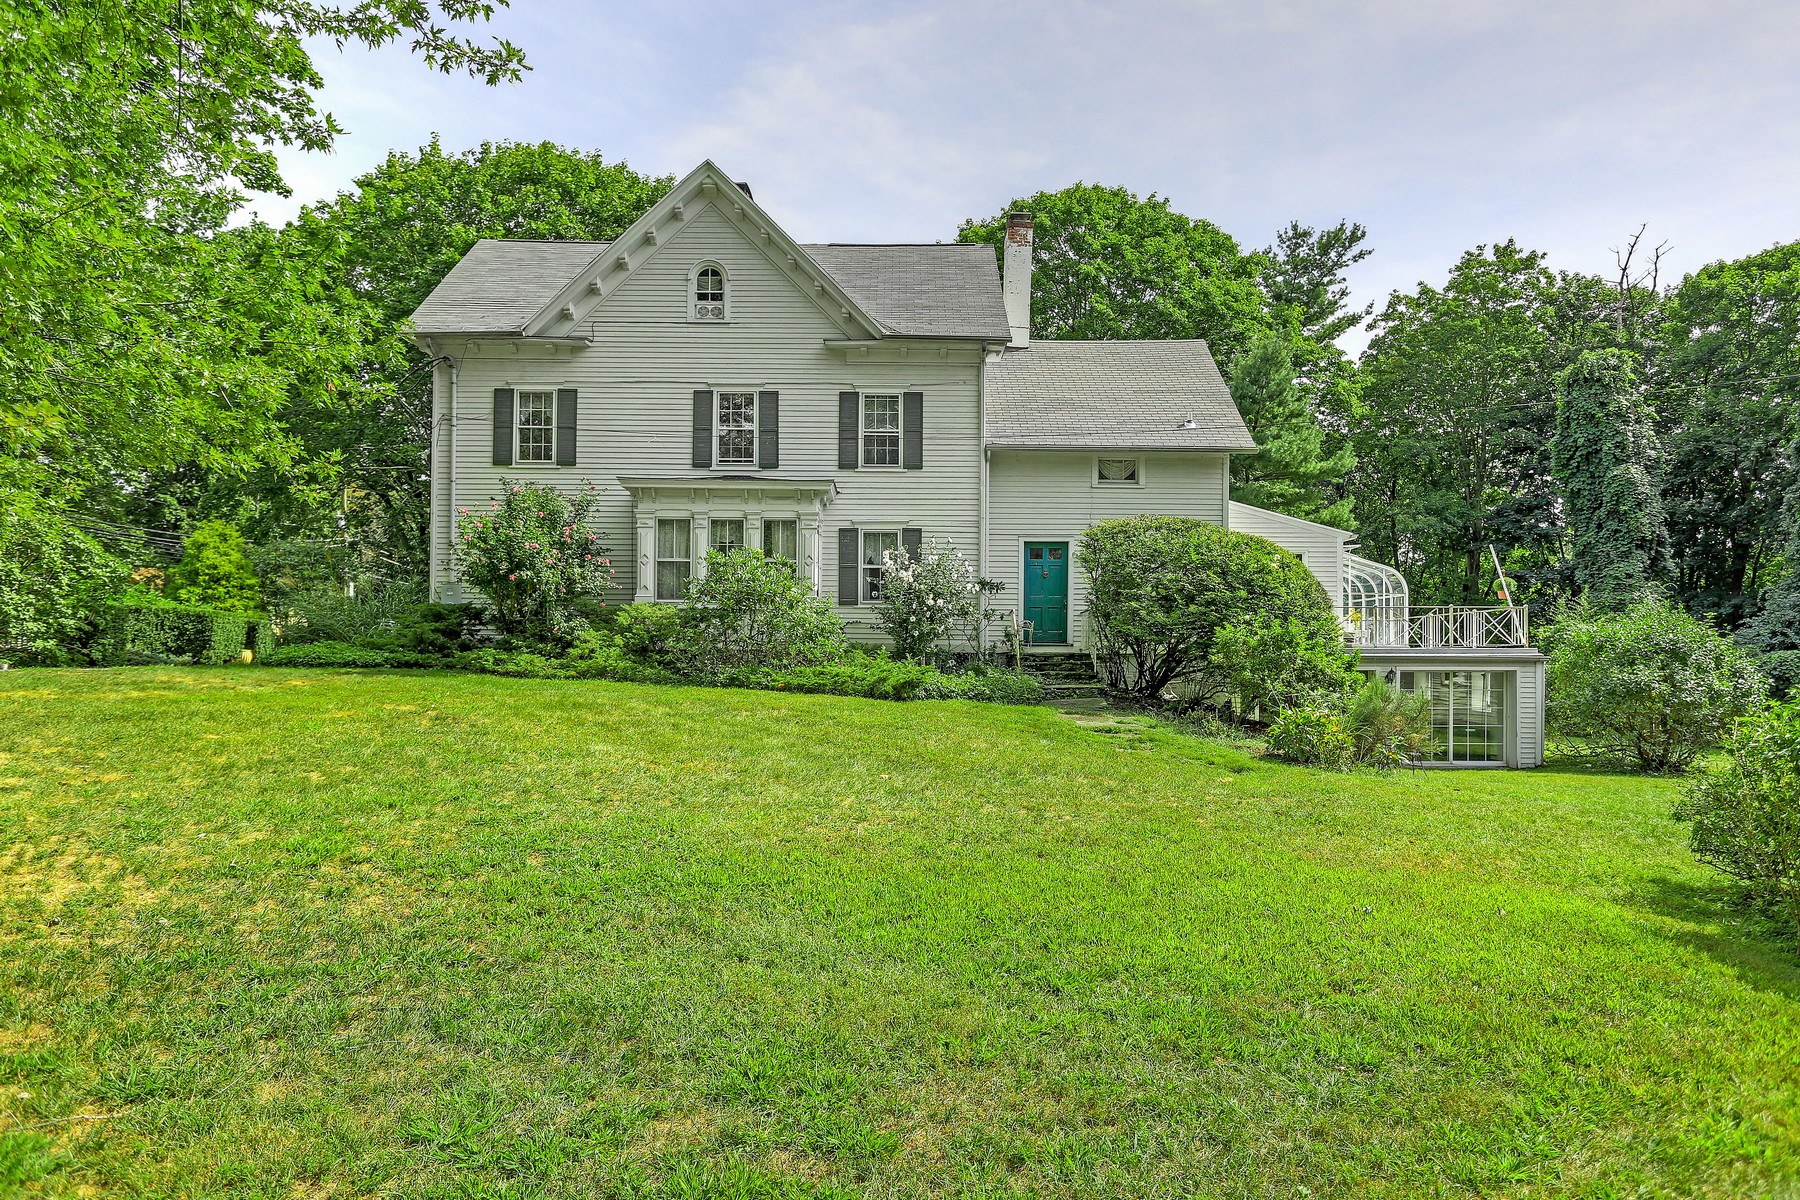 Single Family Home for Sale at Wonderful Victorian Farmhouse with Cottage and Boathouse 244-244a Greens Farms Road Westport, Connecticut, 06880 United States